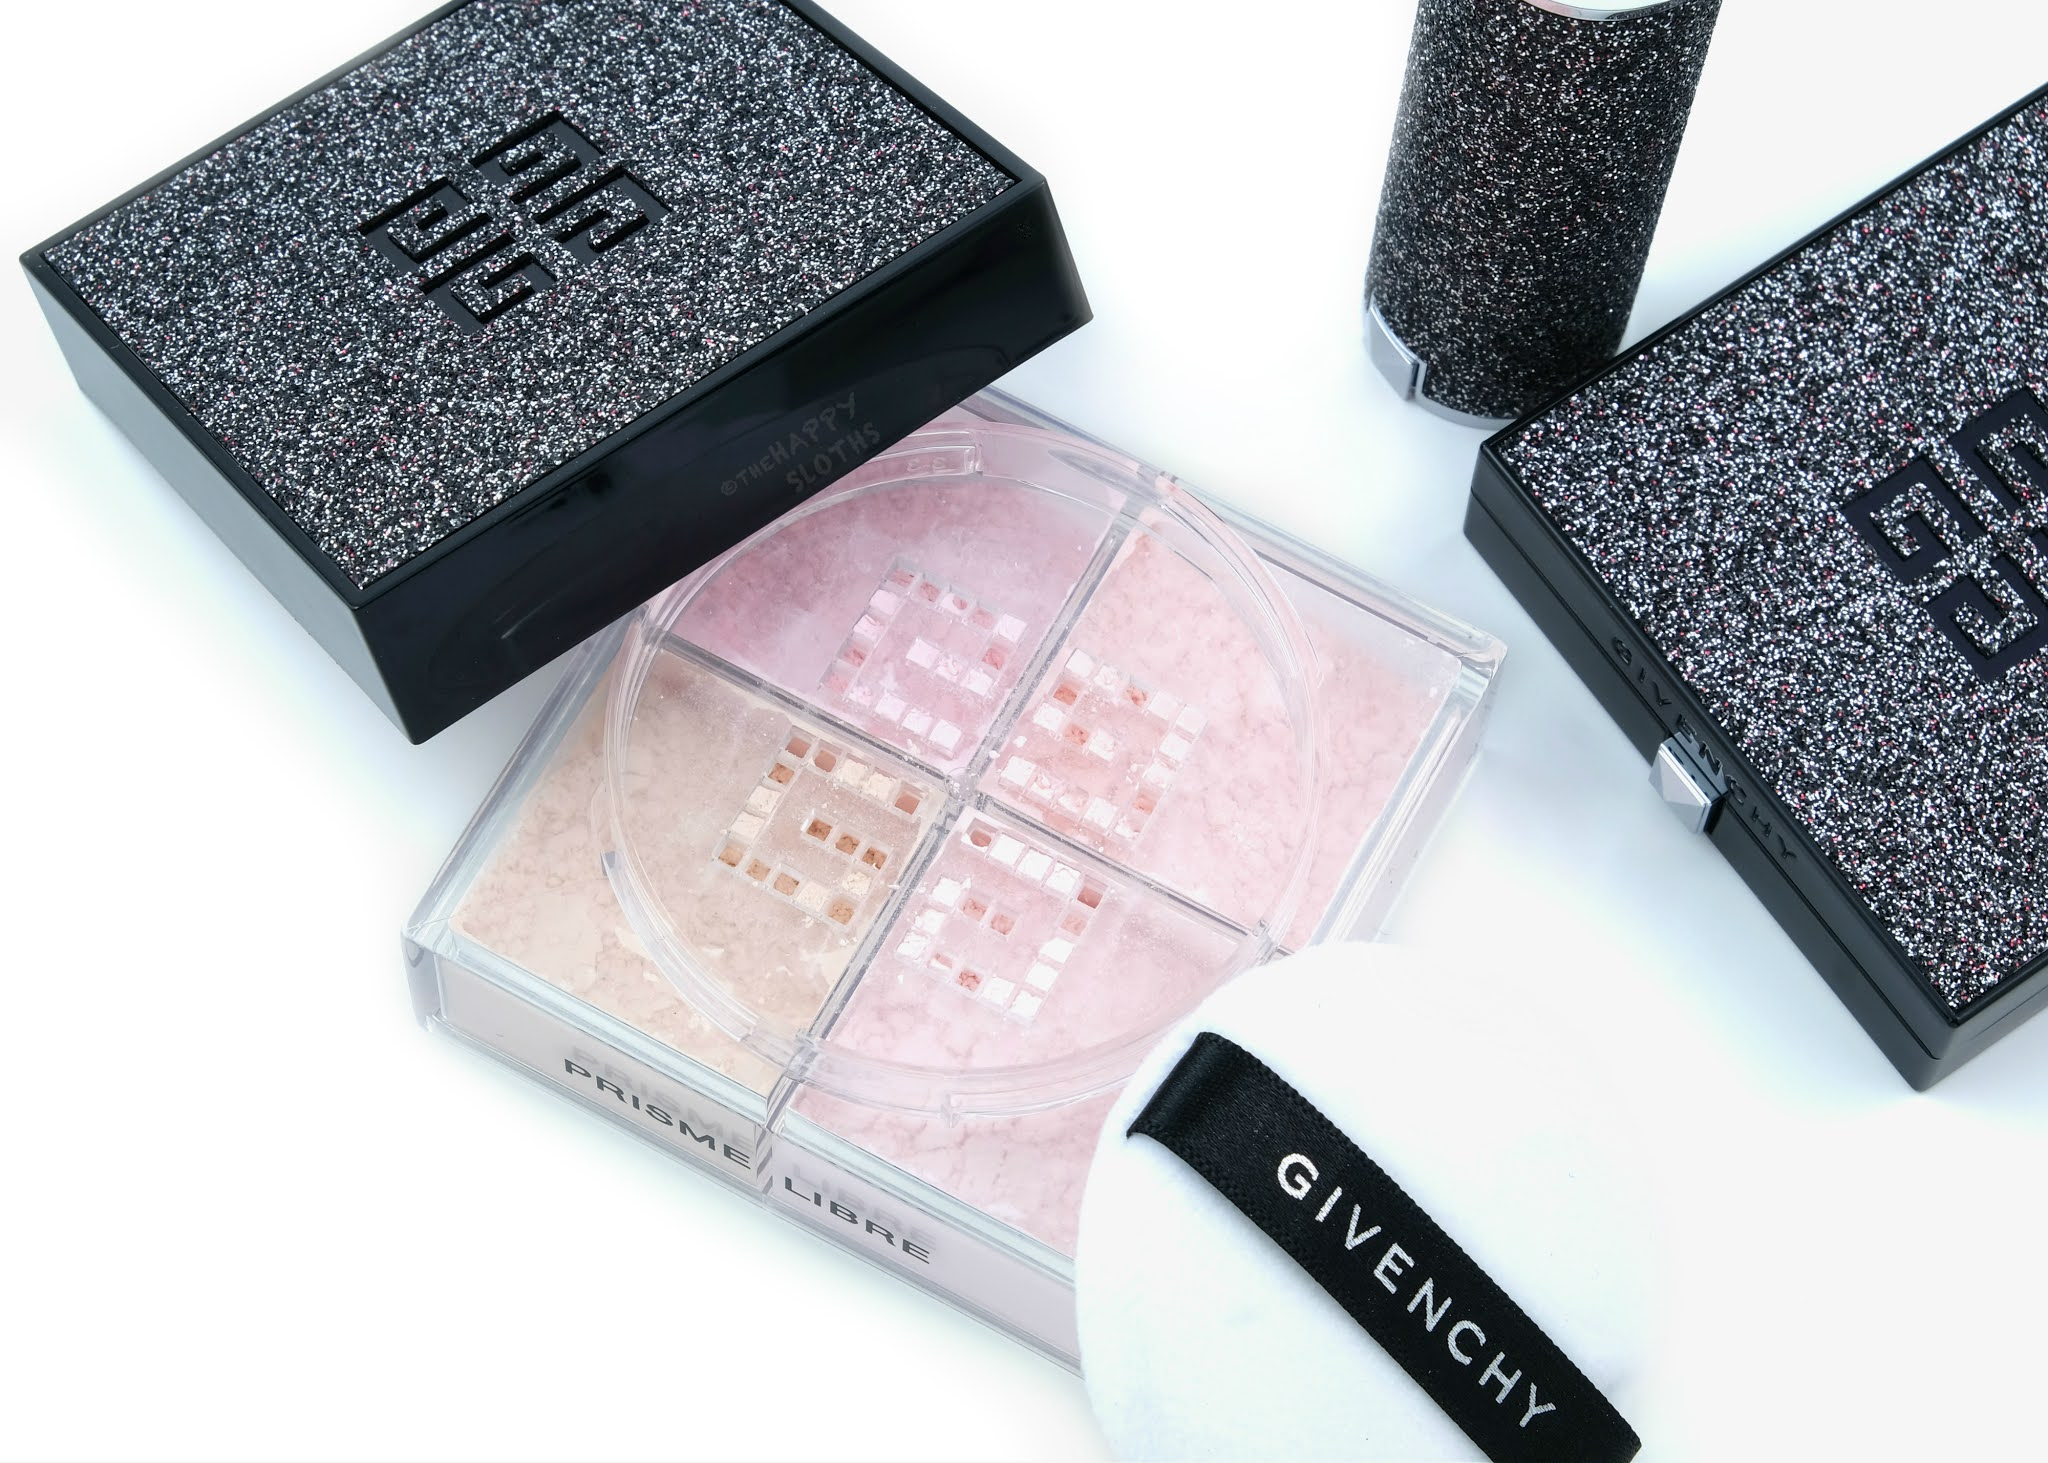 Givenchy | Holiday 2020 Prisme Libre Limited Edition Loose Powder: Review